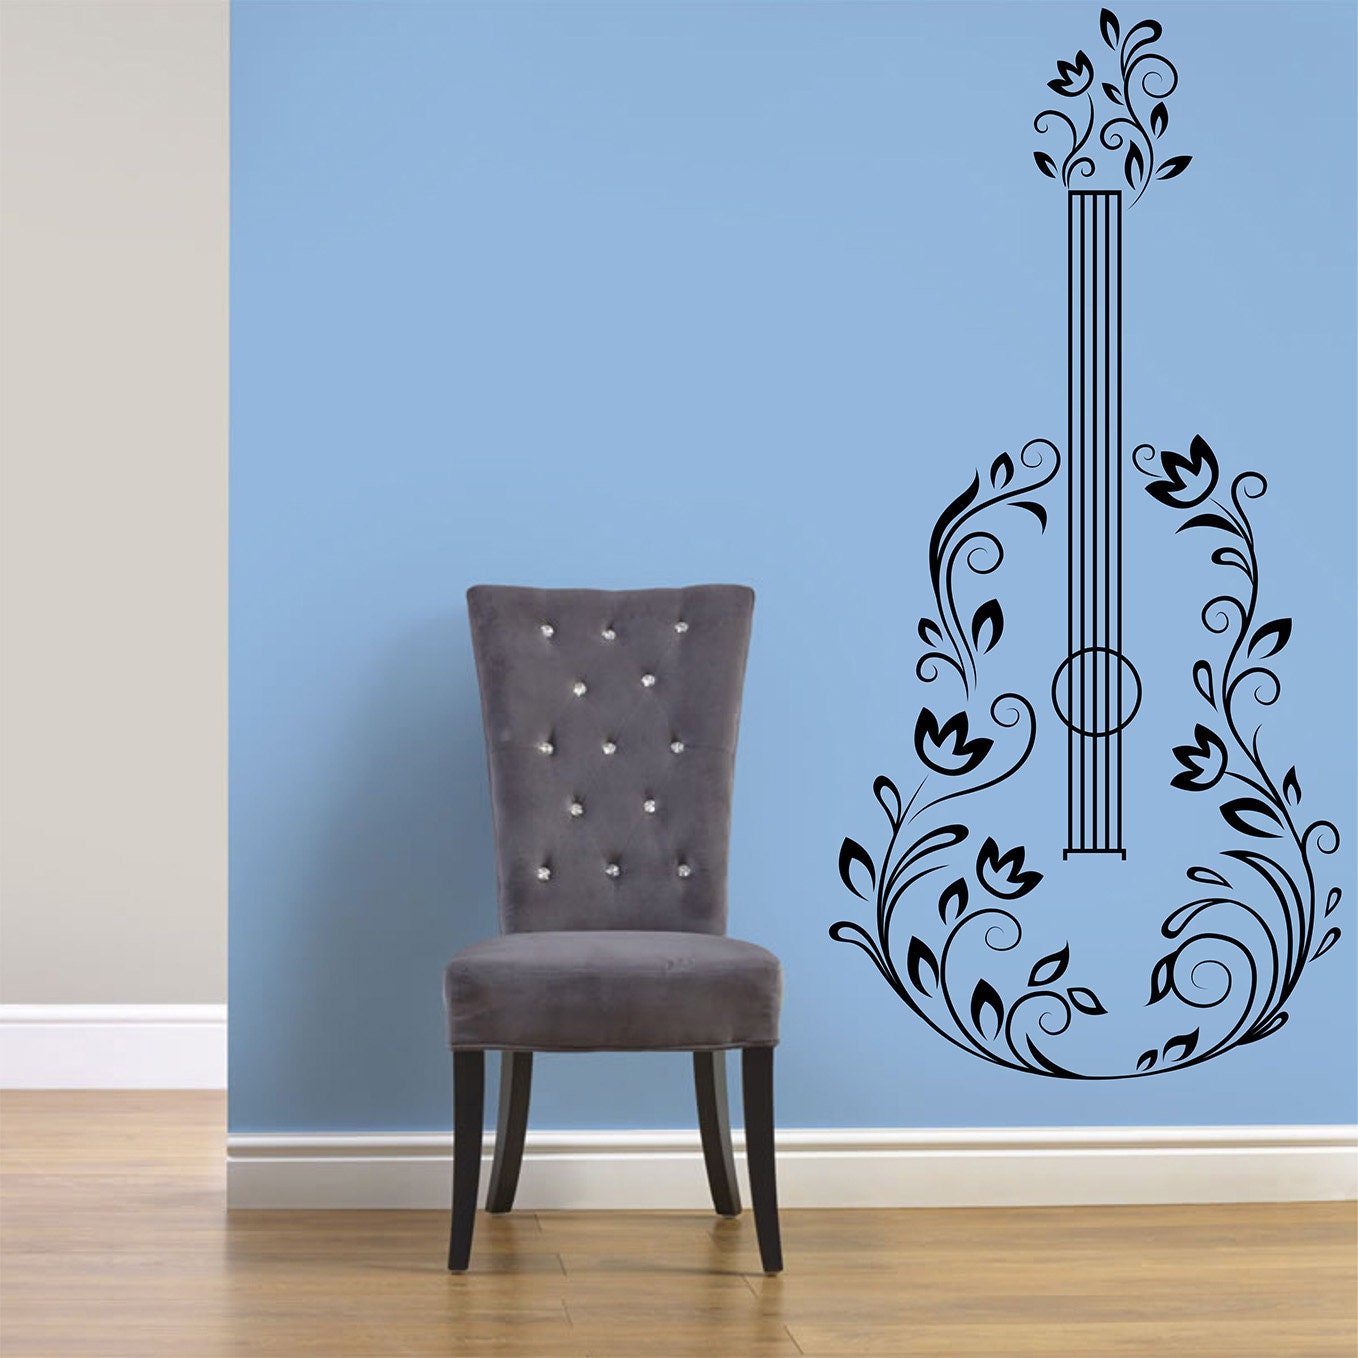 Guitar With Flowers Wall Decal Music Wall Decal Guitar Wall - Custom vinyl guitar stickers